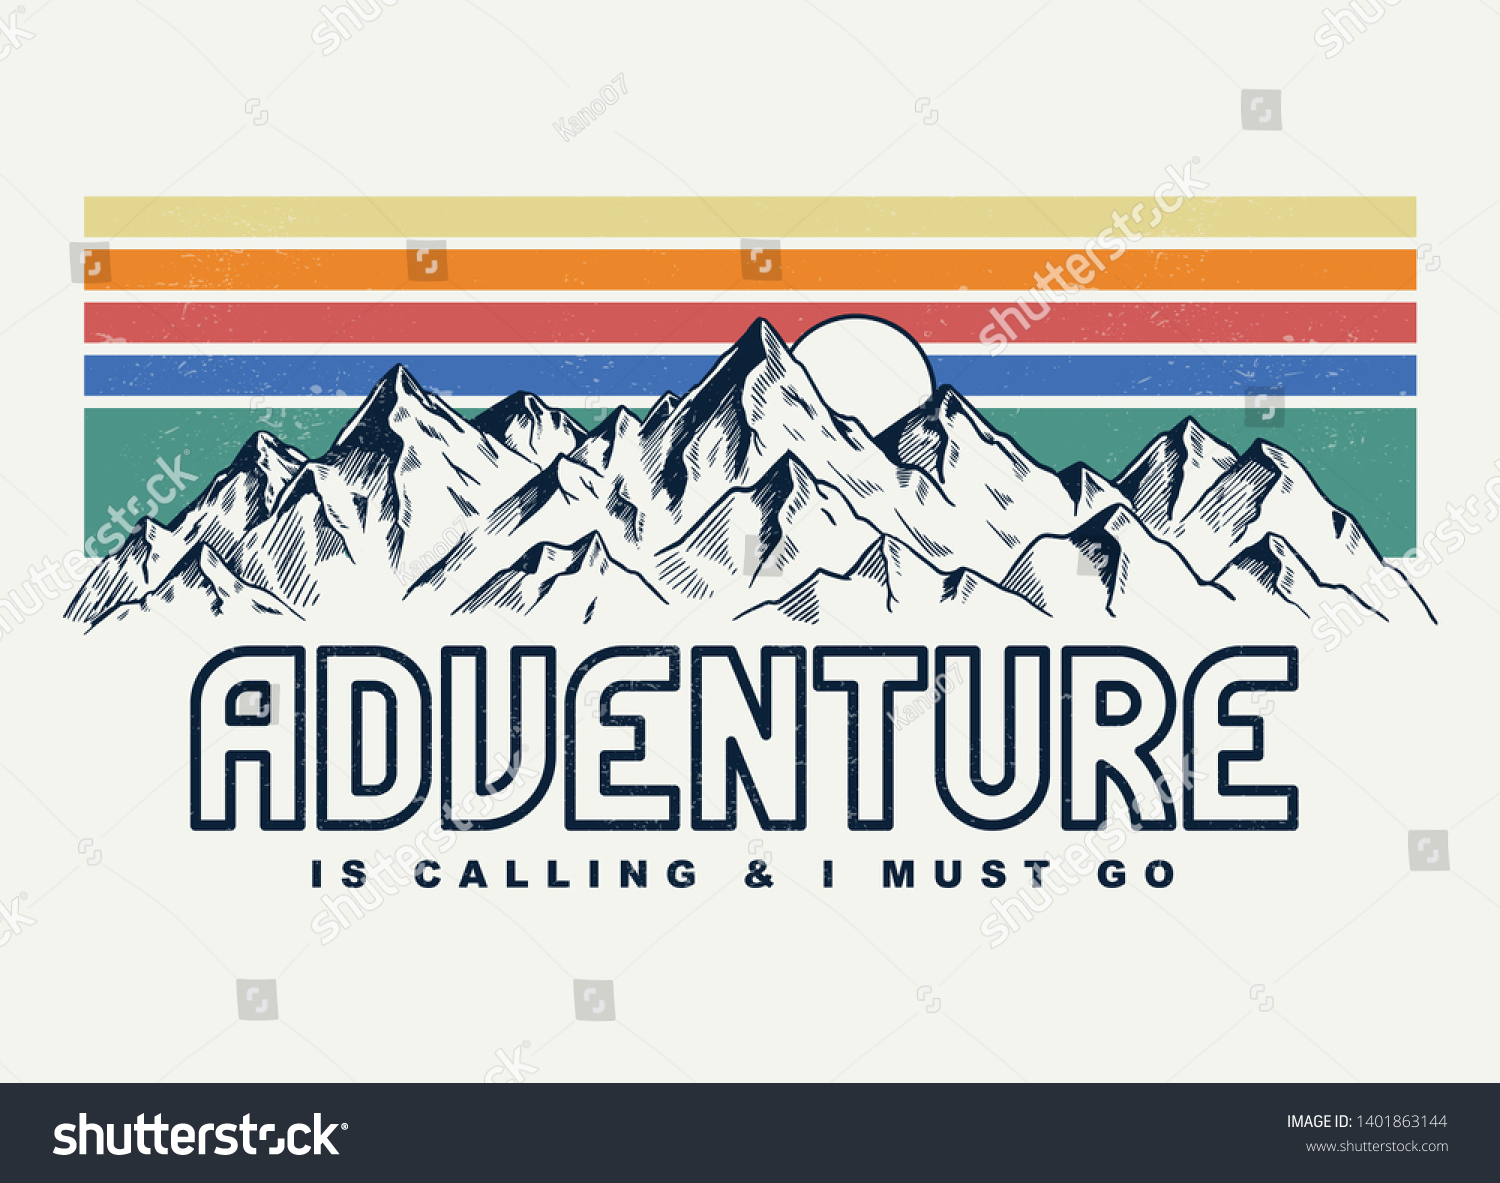 Mountain illustration, outdoor adventure . Vector graphic for t shirt and other uses. #1401863144